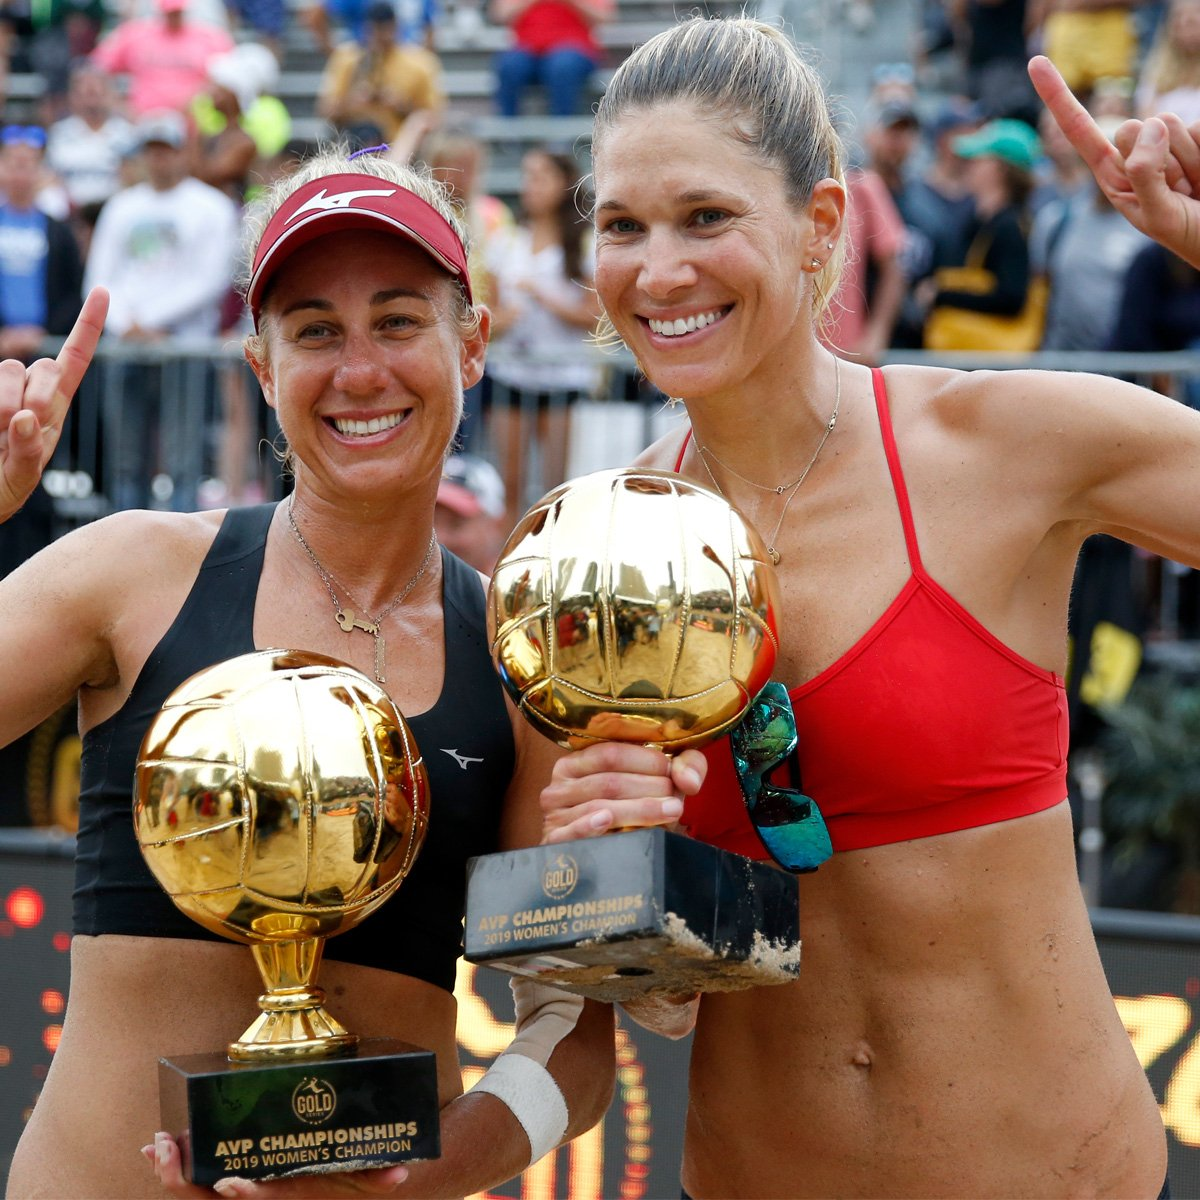 Get to Know April Ross and Alix Klineman, the Beach Volleyball Pros Dominating the Olympics